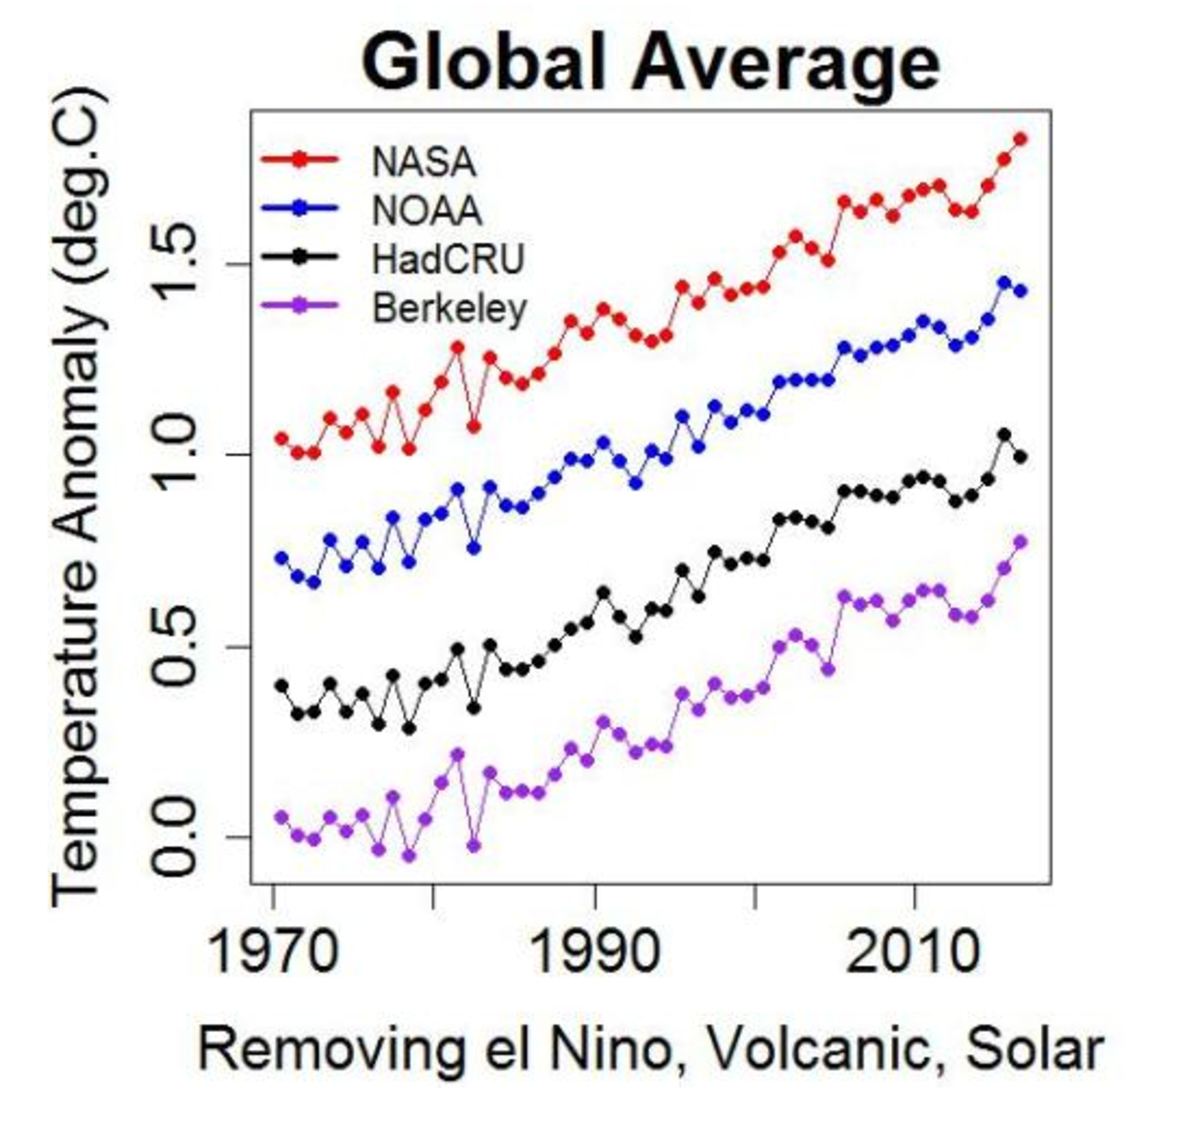 Instrumental (thermometer) global temps, adjusted for solar, volcanic, and El Nino effects.